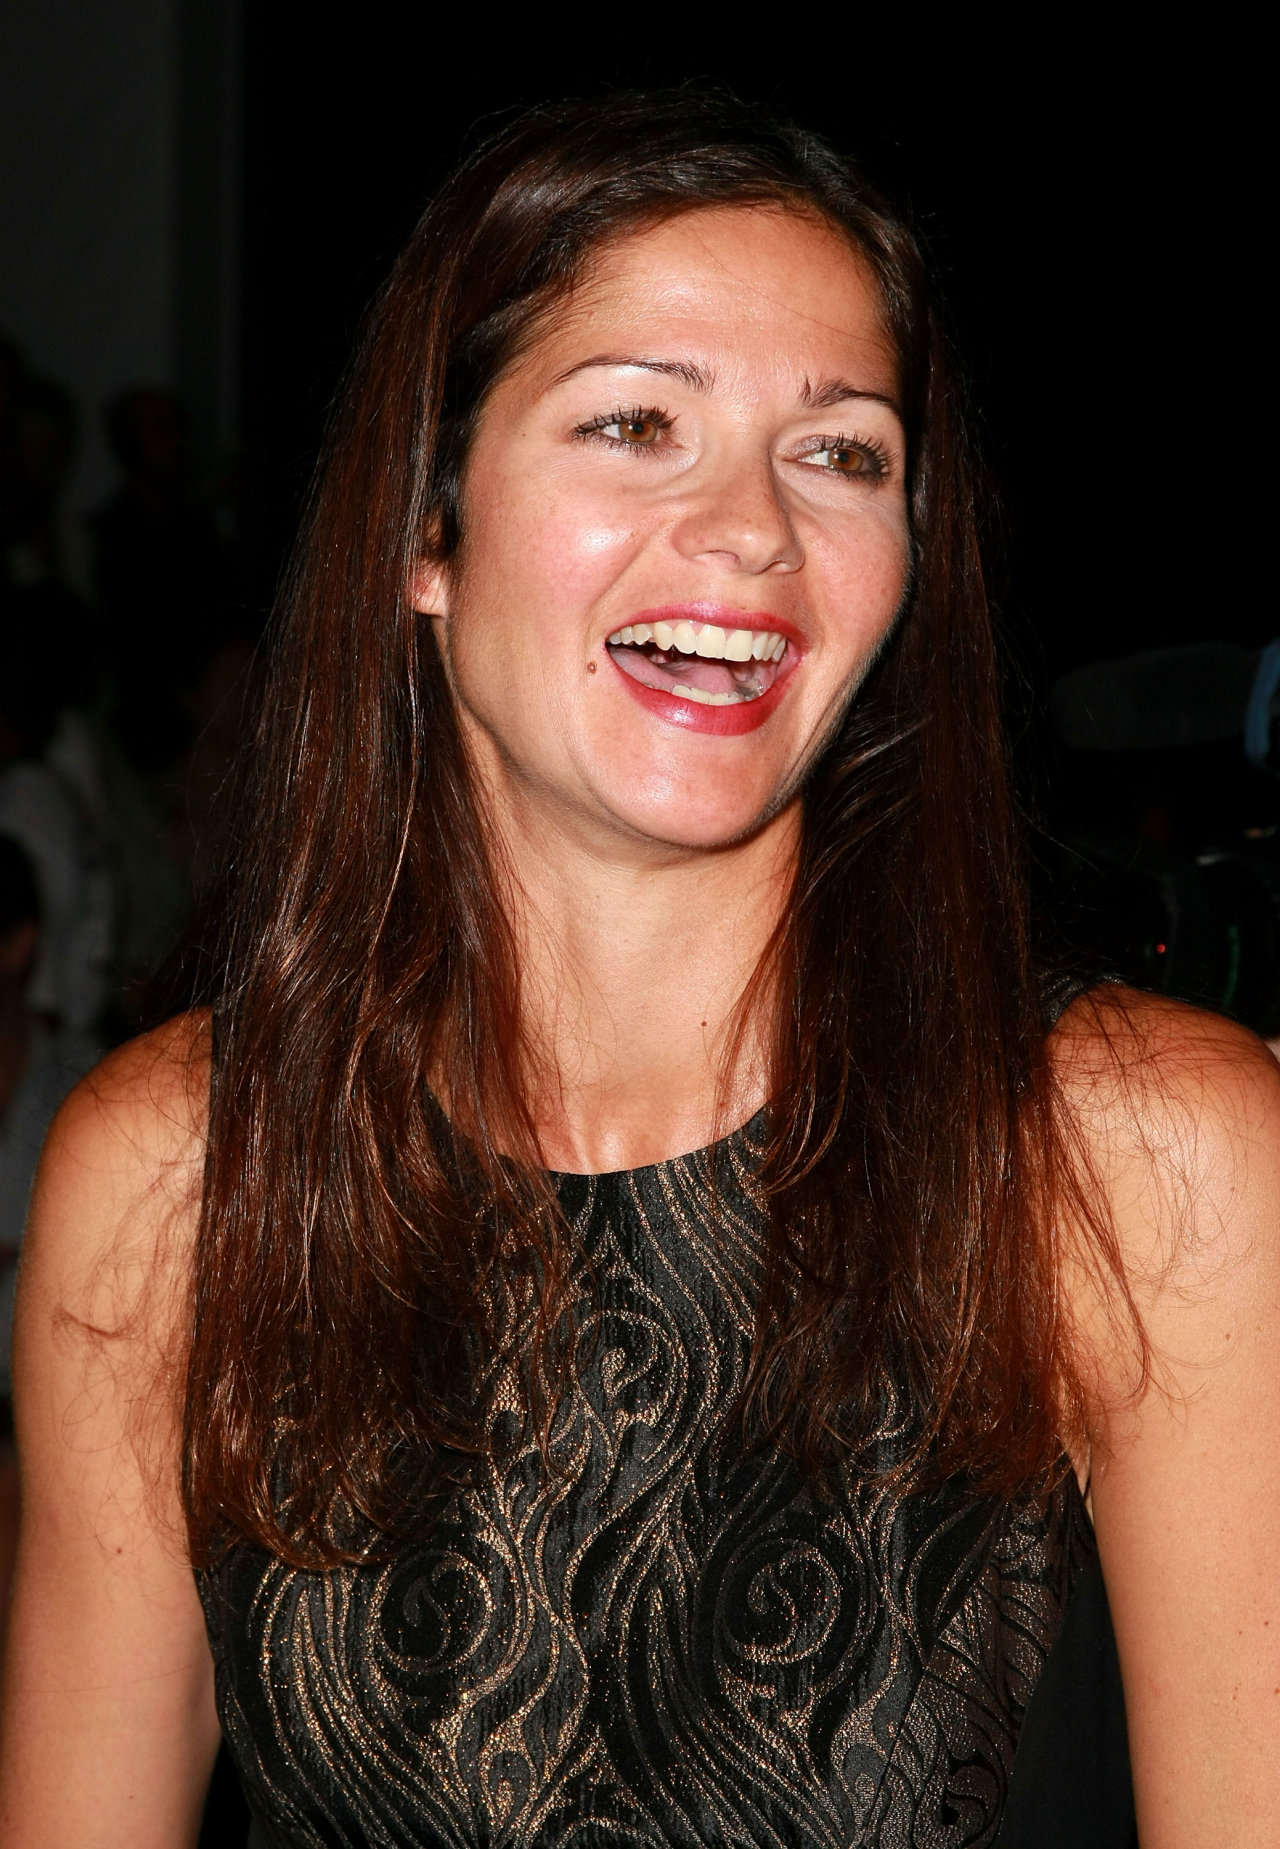 jill hennessay gallery Find the perfect jill hennessy stock photo huge collection, amazing choice, 100+ million high quality, affordable rf and rm images no need to register, buy now.